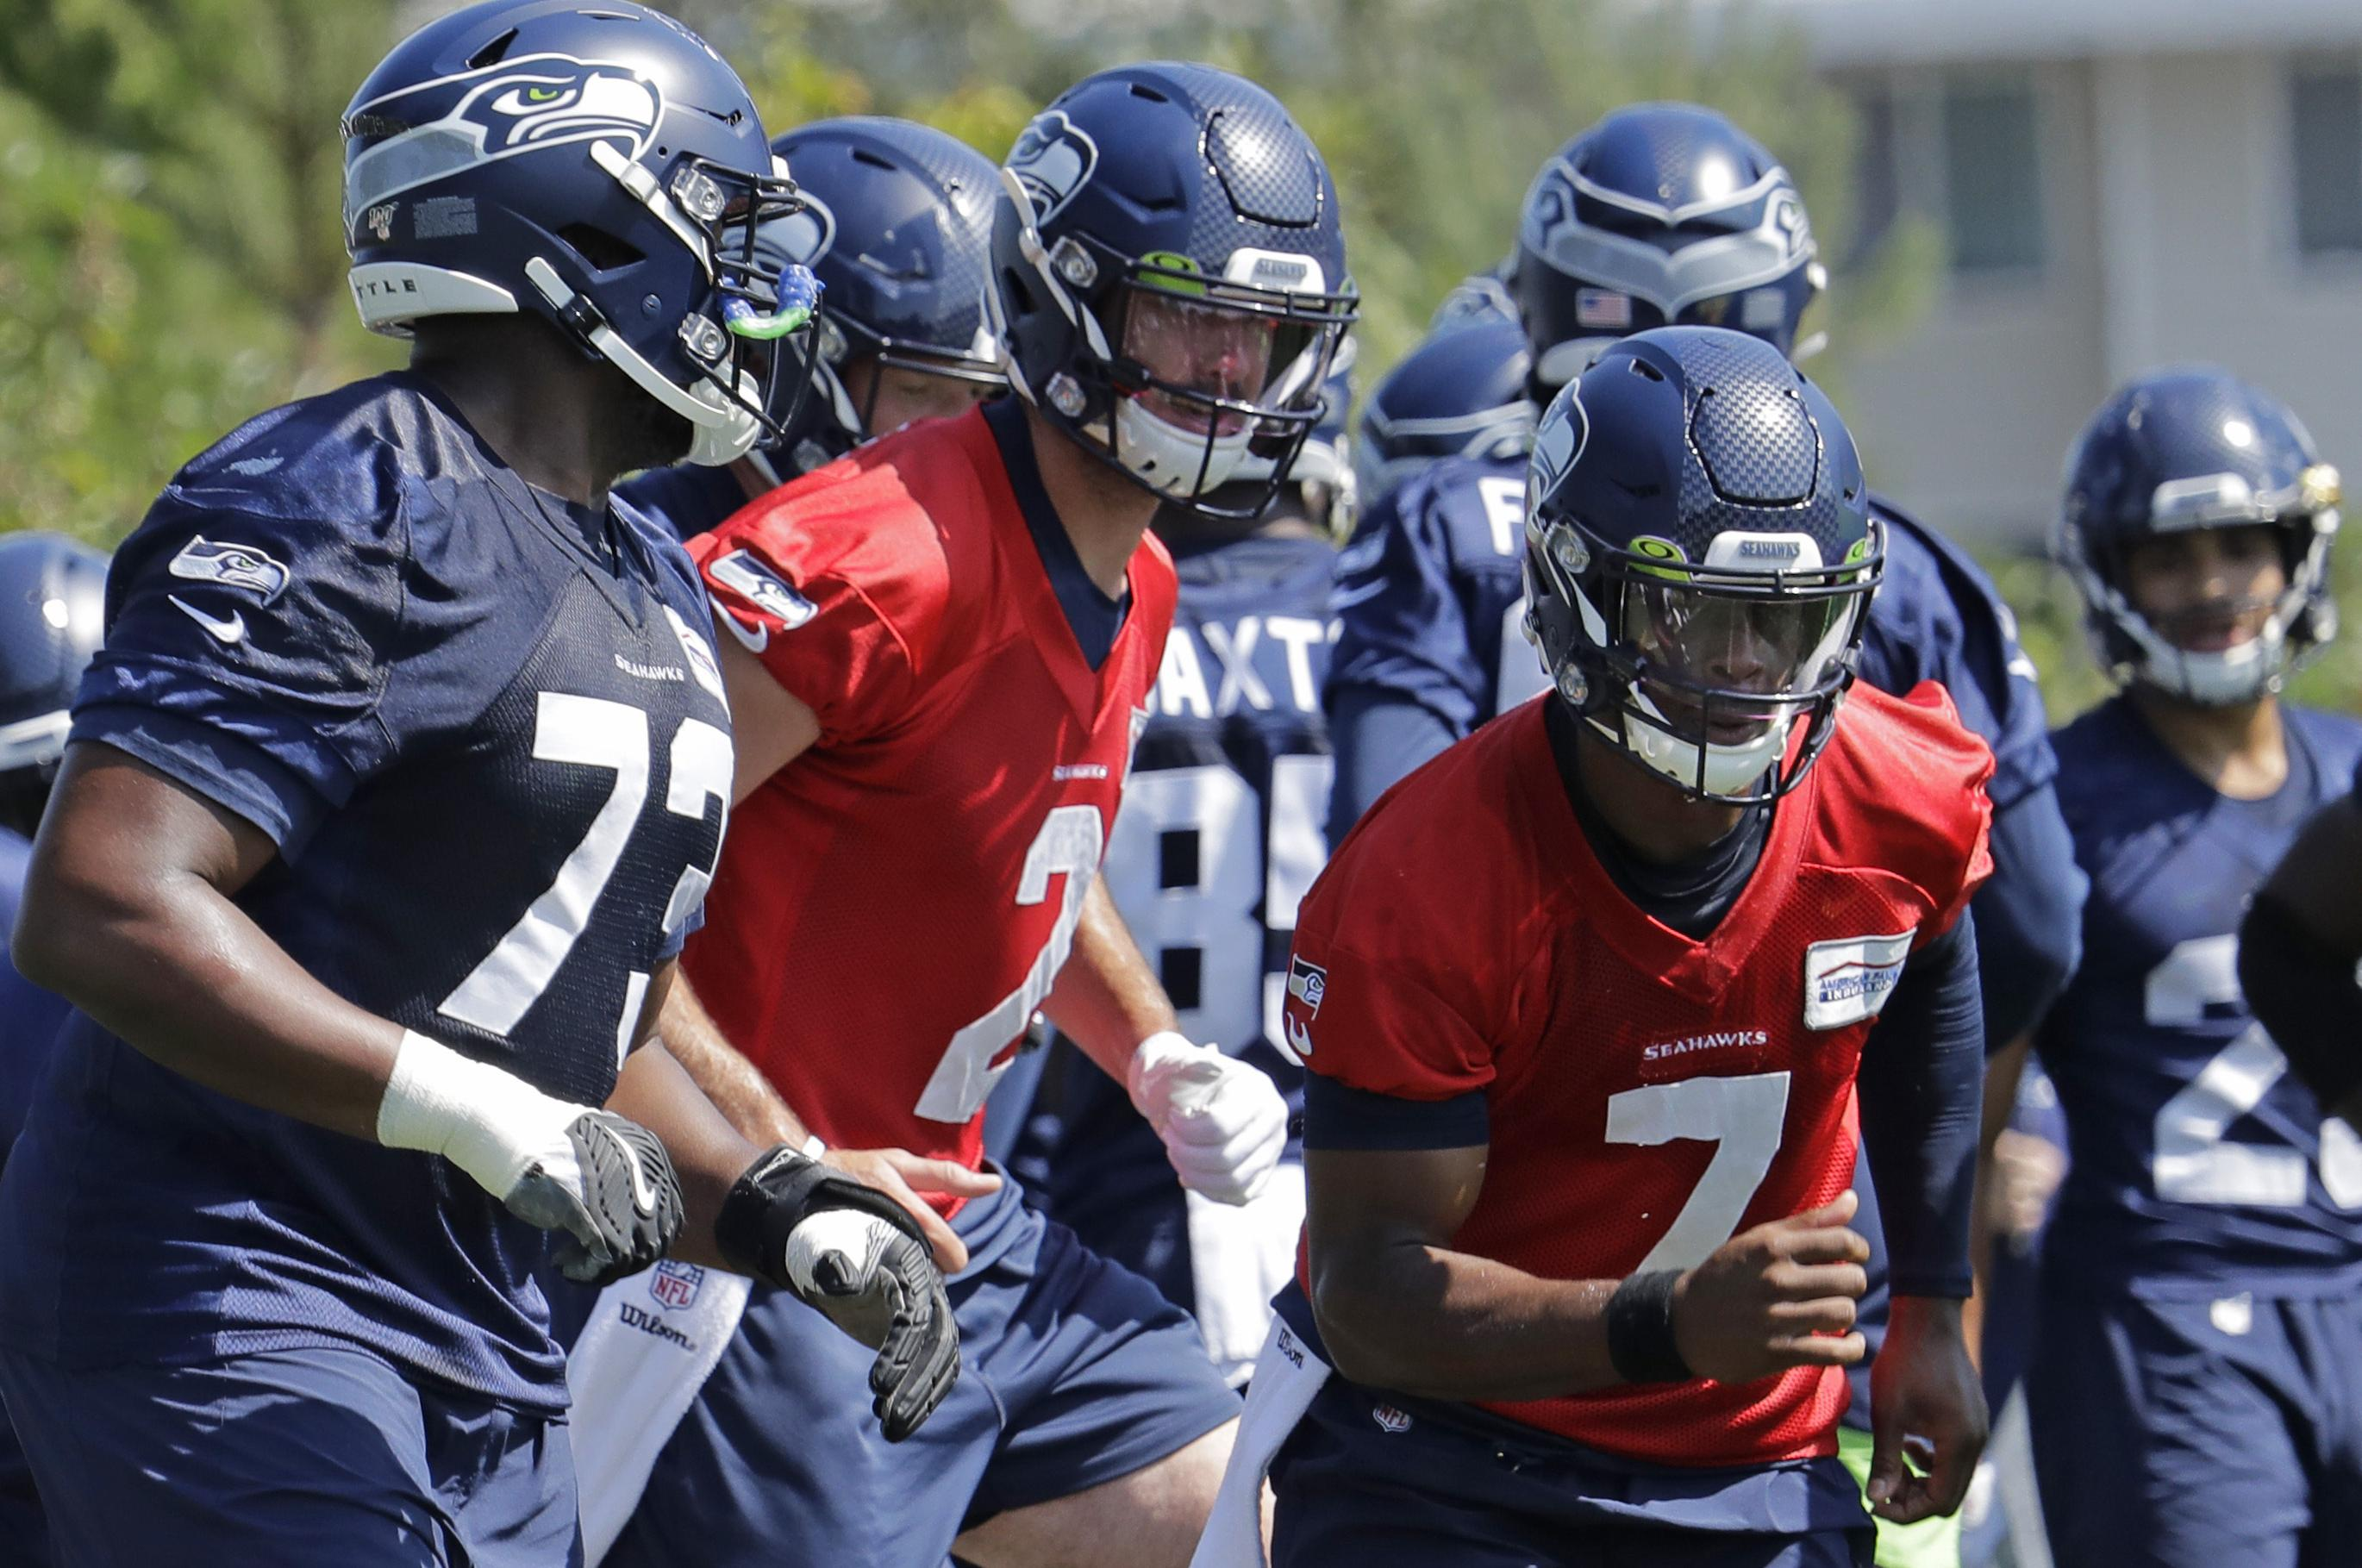 Geno Smith Paxton Lynch Competing For Backup Qb Spot With